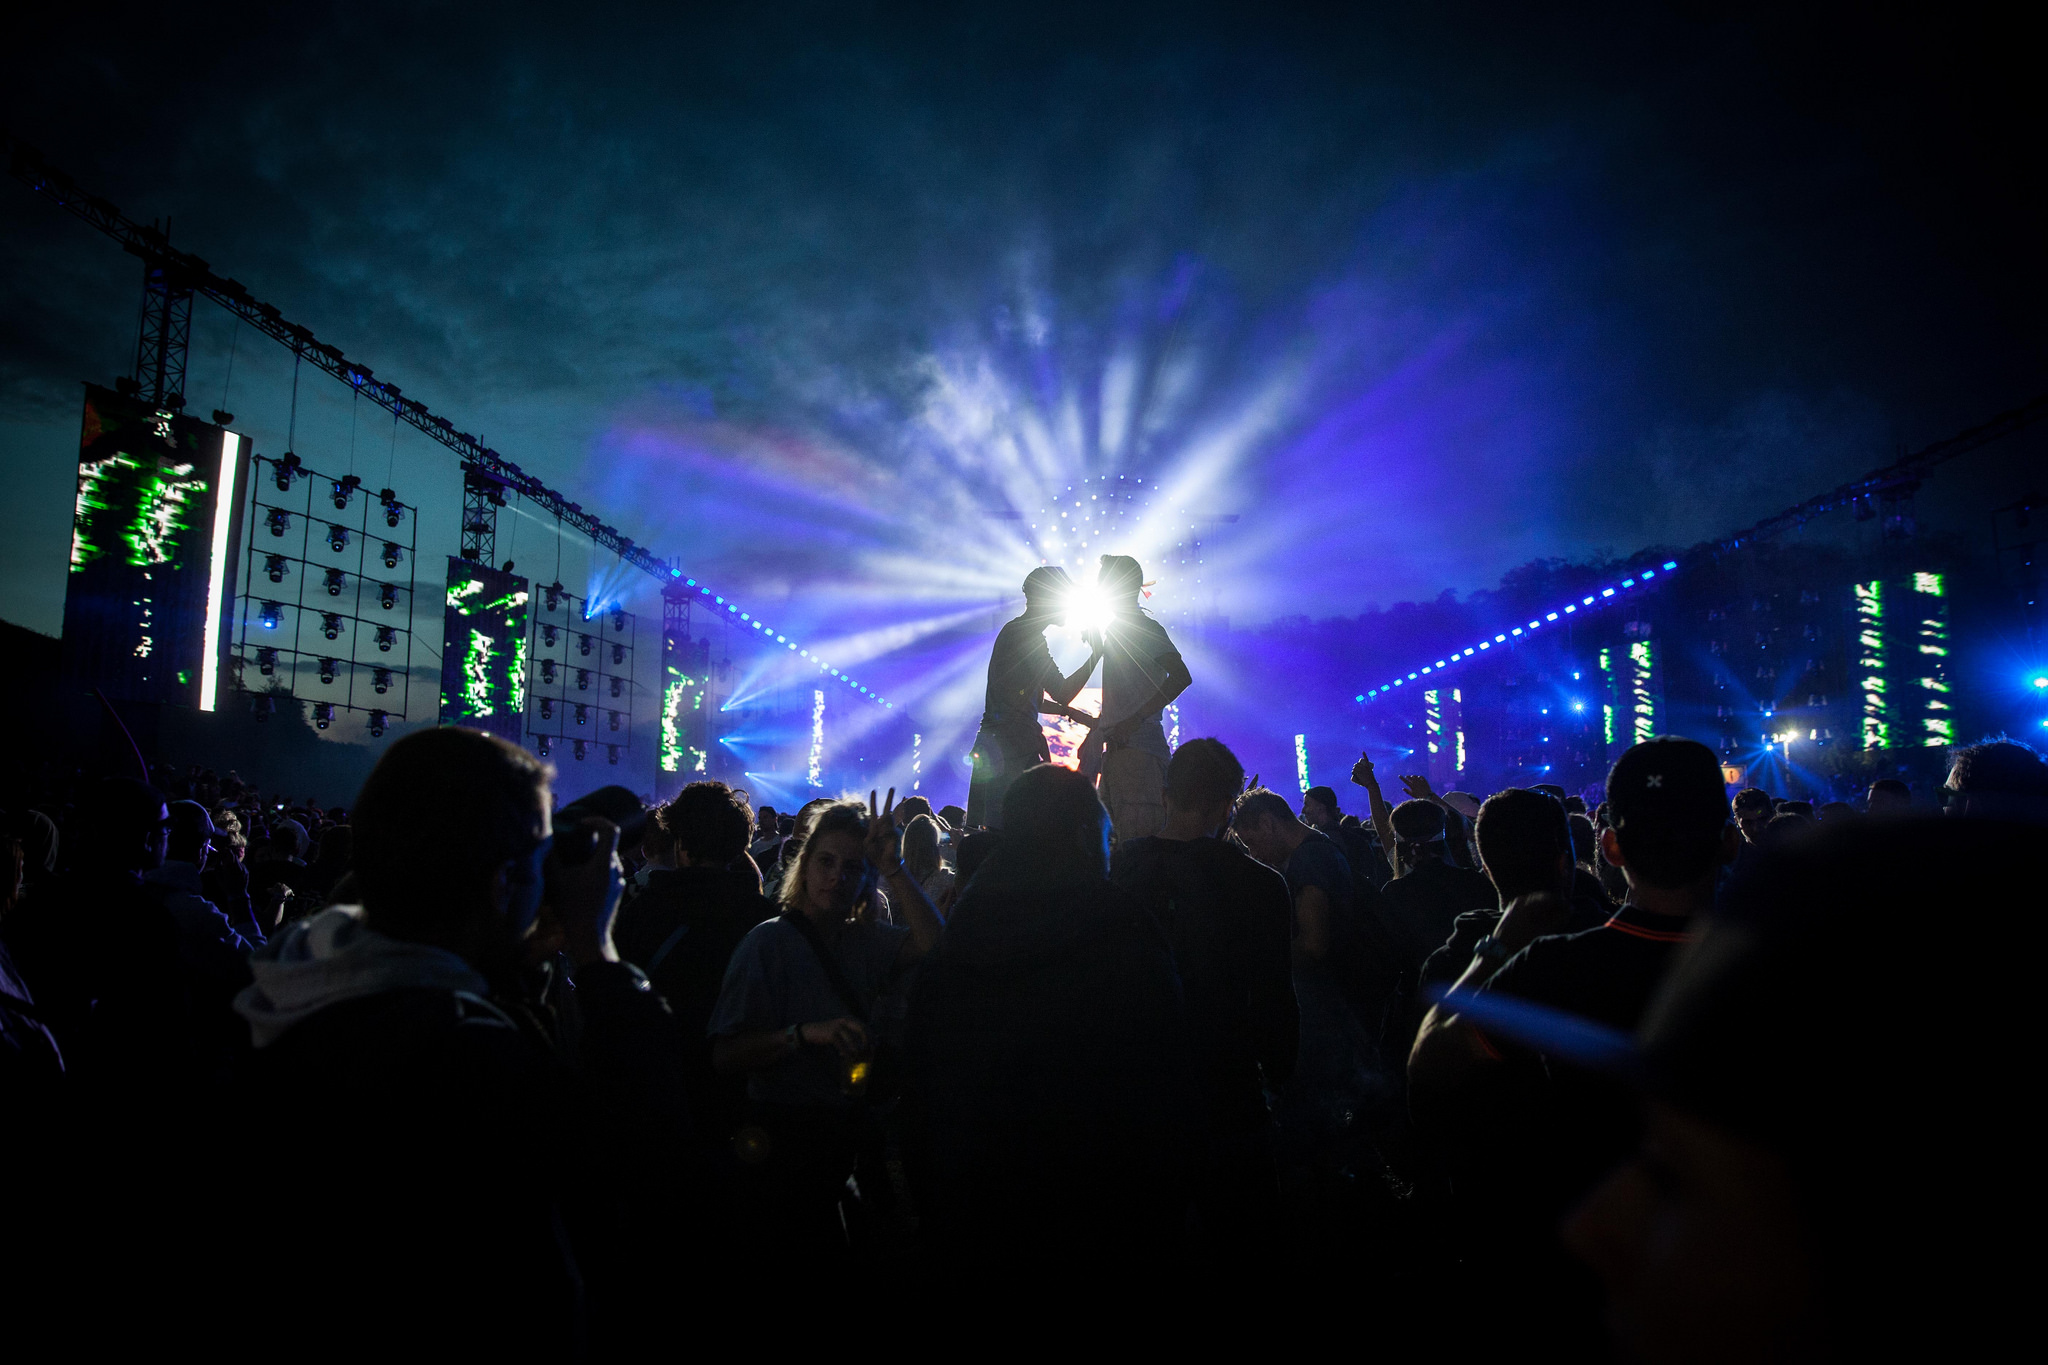 29th edition of Dour Festival a tremendous success, with all previous records beaten.